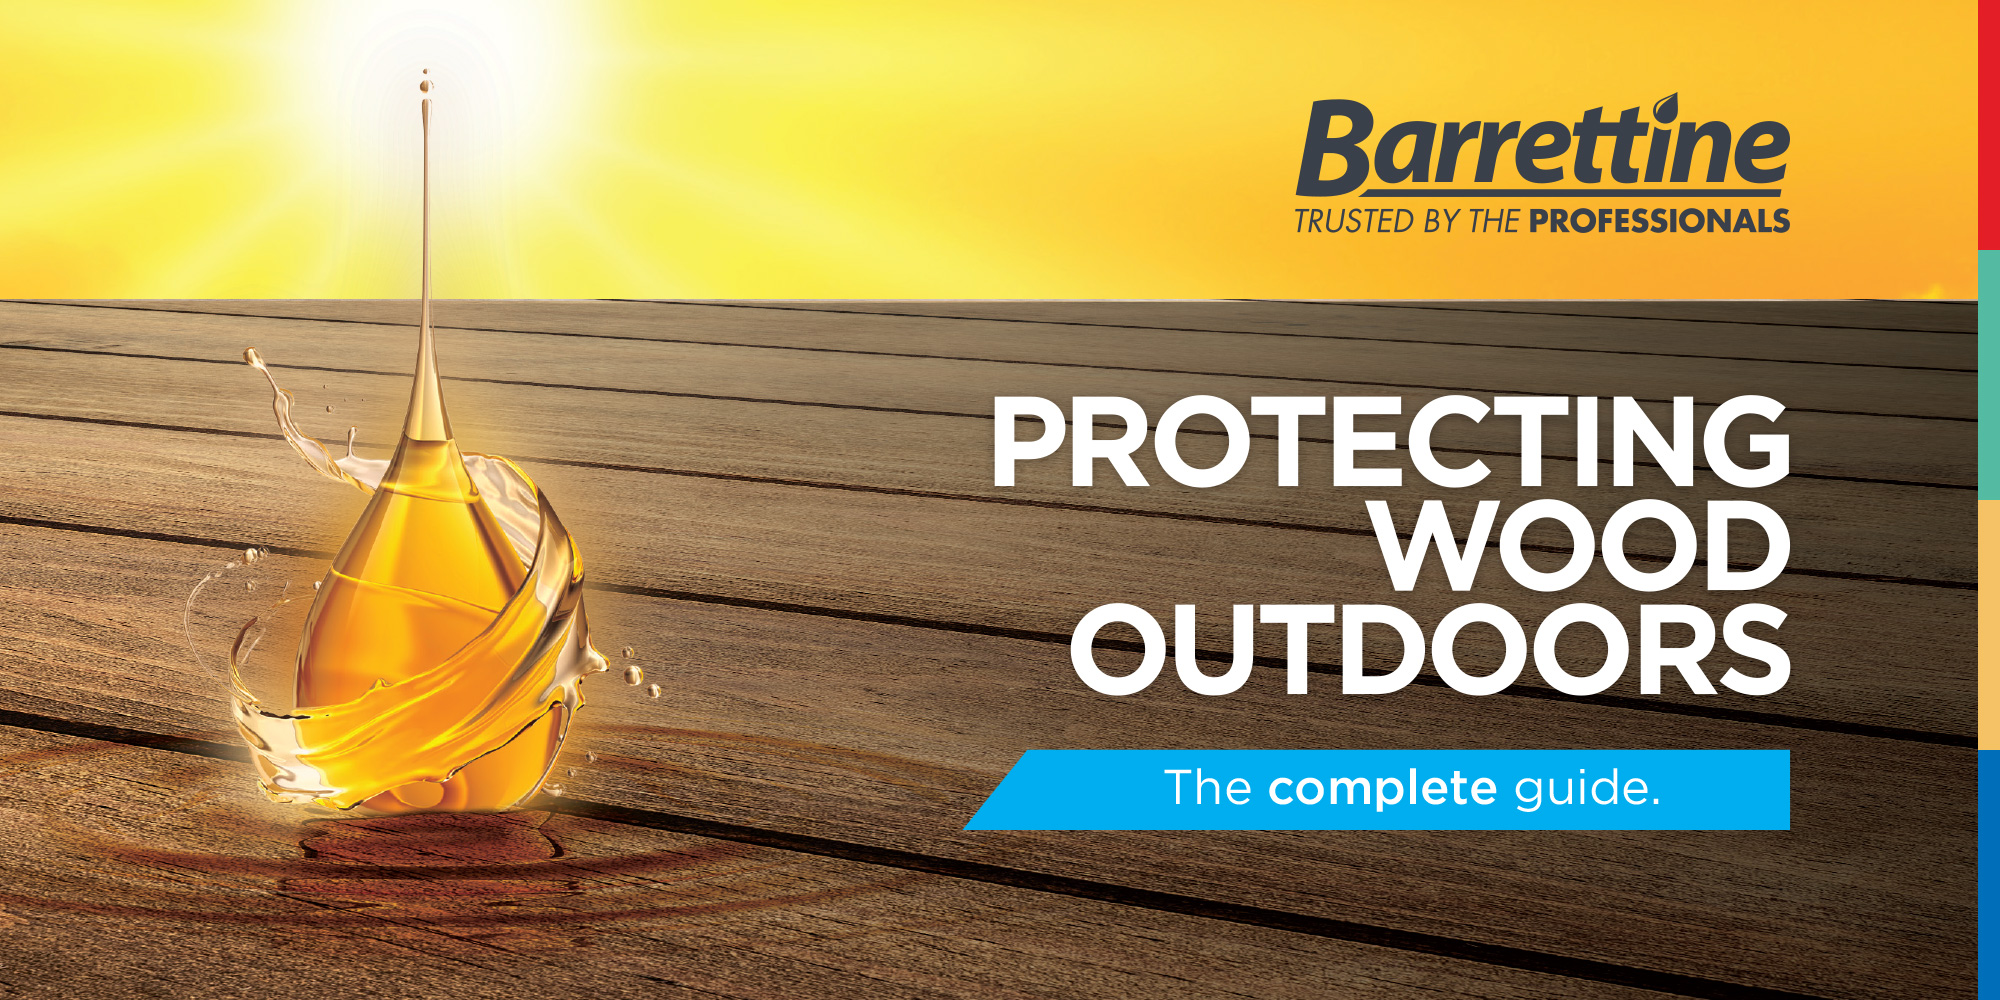 Protecting wood outdoors